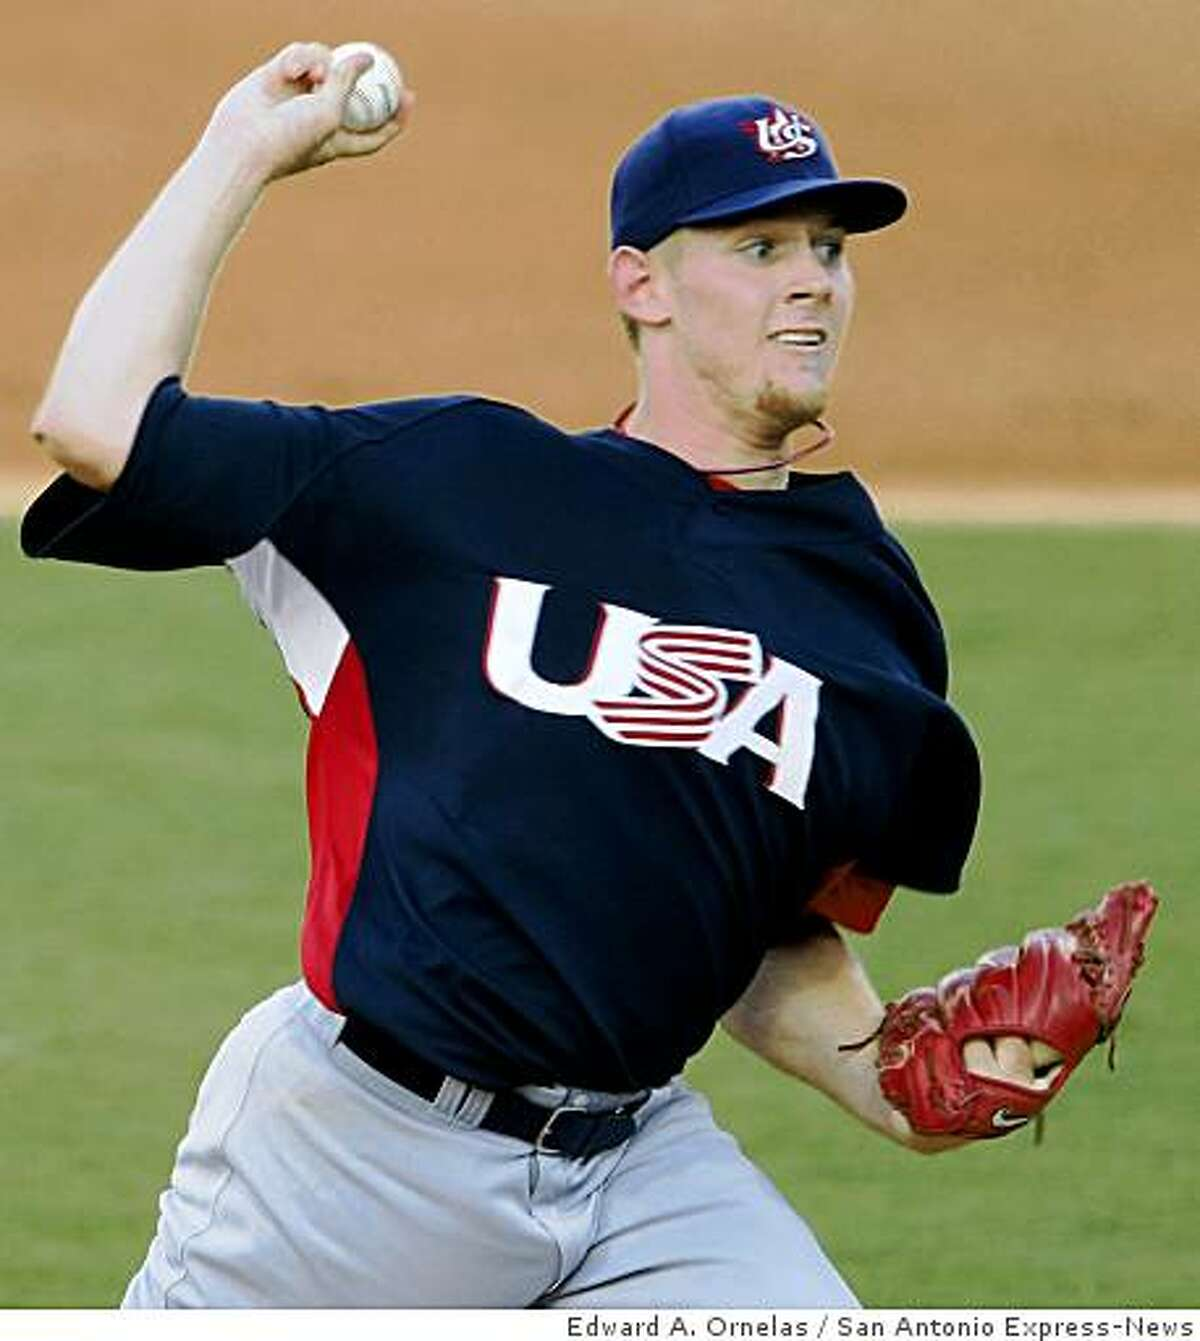 FOR SPORTS - USA's Stephen Strasburg pitches against Cuba during a semifinal game at the 2008 Beijing Olympics Friday Aug 22, 2008 in Beijing, China. Cuba won 10-2. (PHOTO BY EDWARD A. ORNELAS/eornelas@express-news.net)